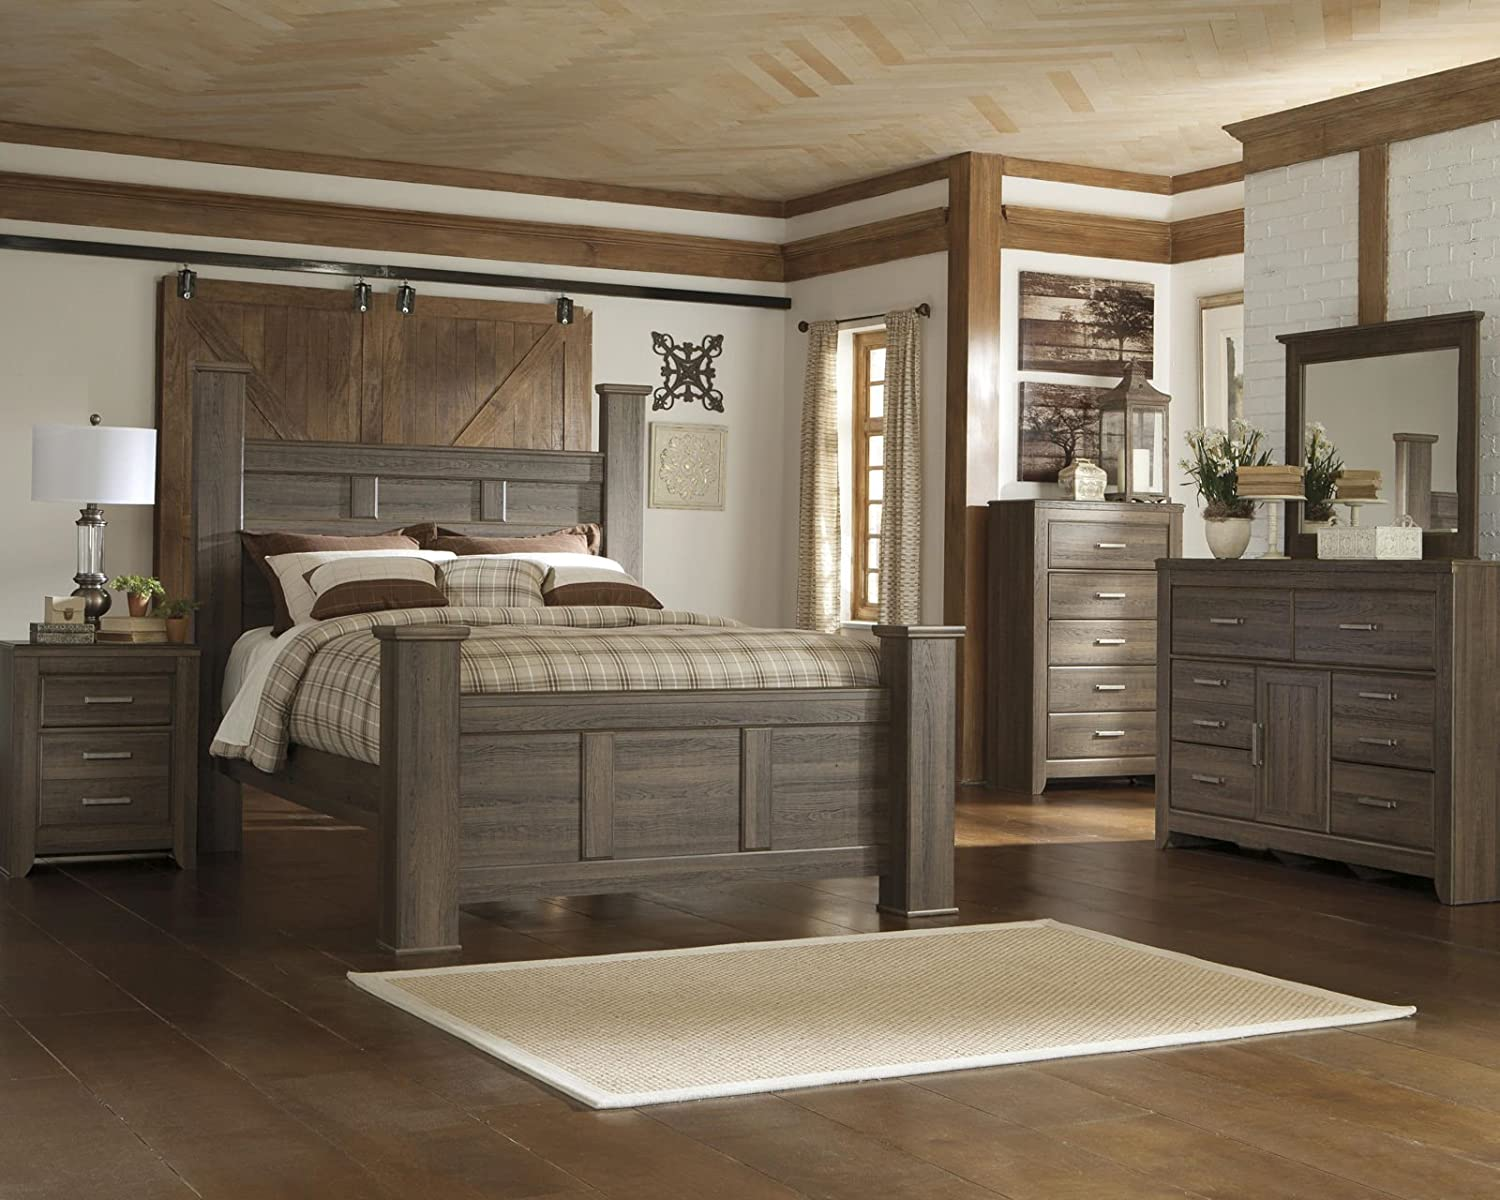 Amazon.com: Signature Design by Ashley Juararo Bedroom Set with ...